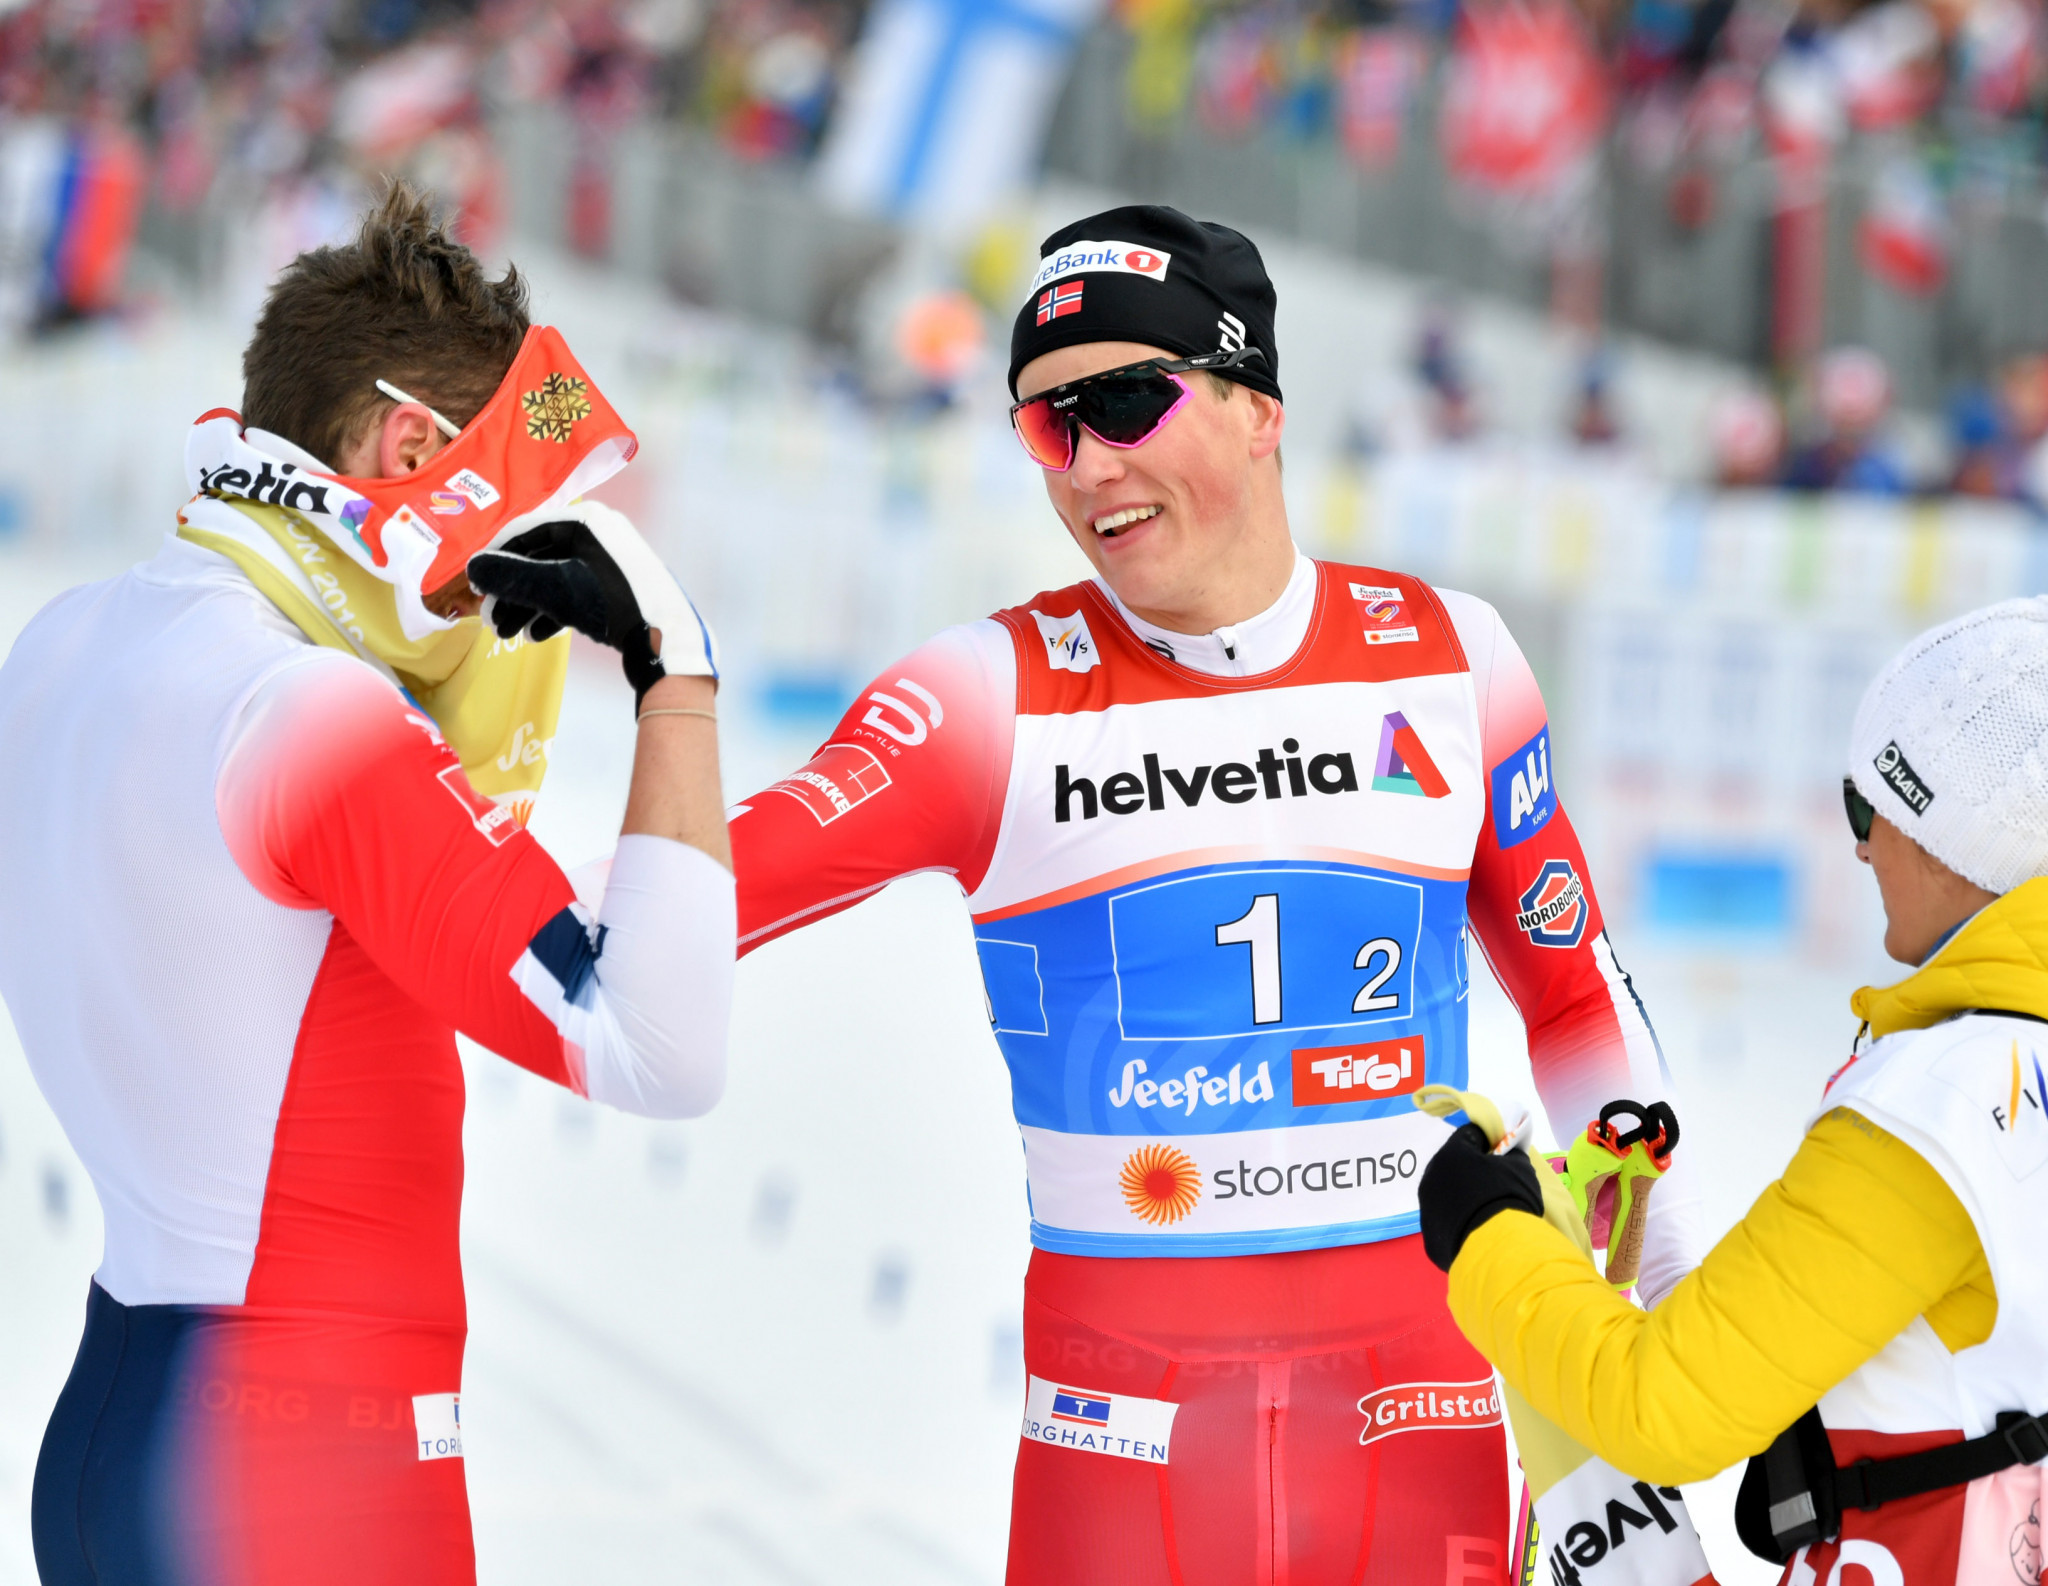 Emil Iversen and Johannes Hoesflot Klaebo emerged as the winners ©Getty Images